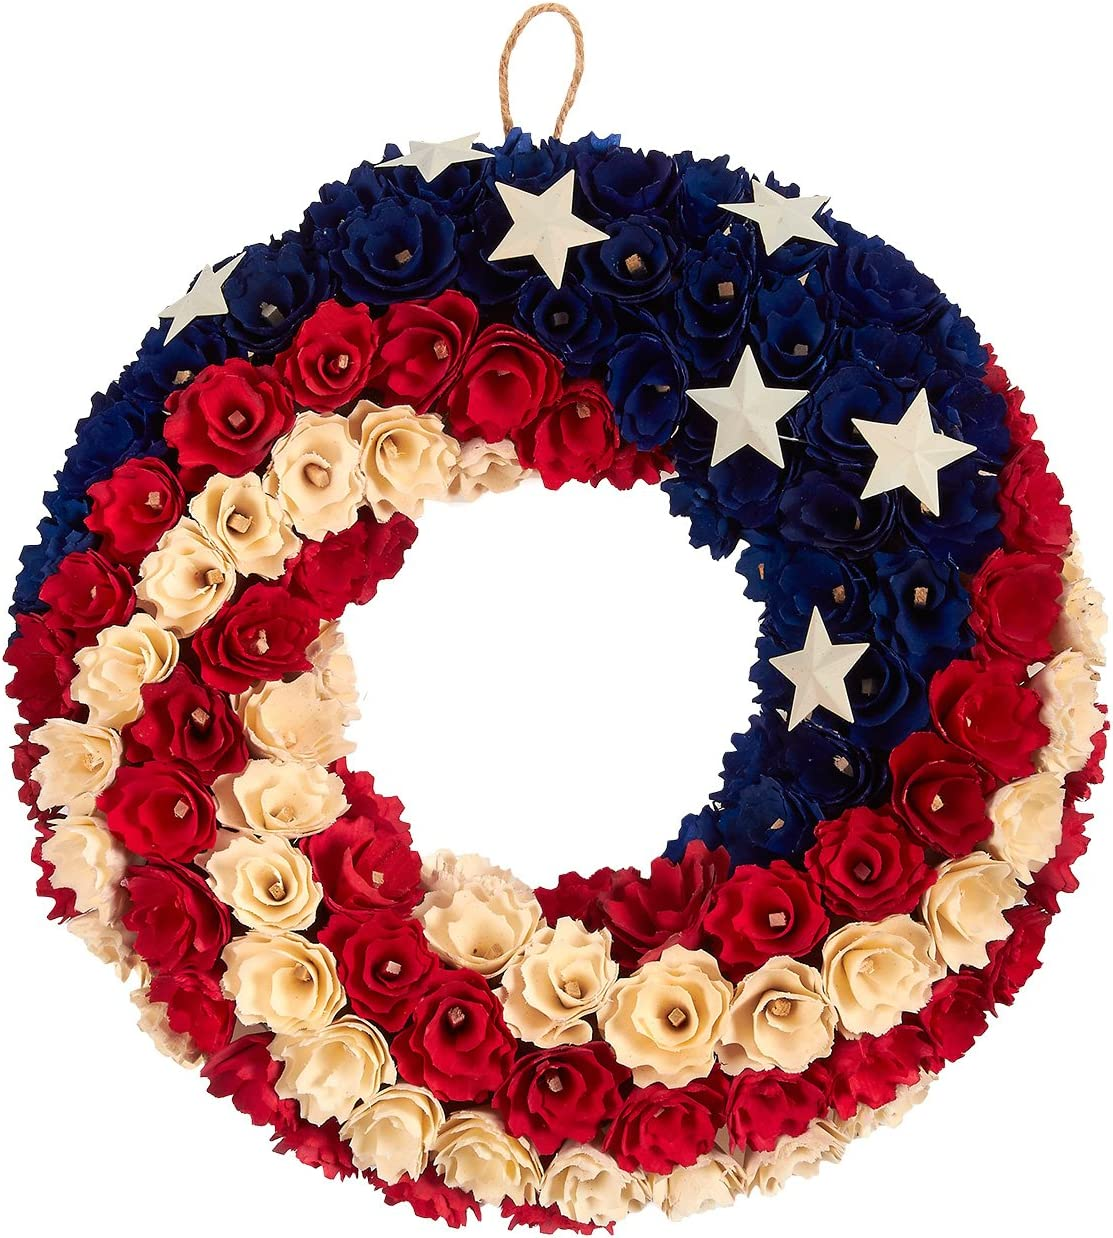 American Flag Decor, Floral Door Wreath for Election Day (14 in)